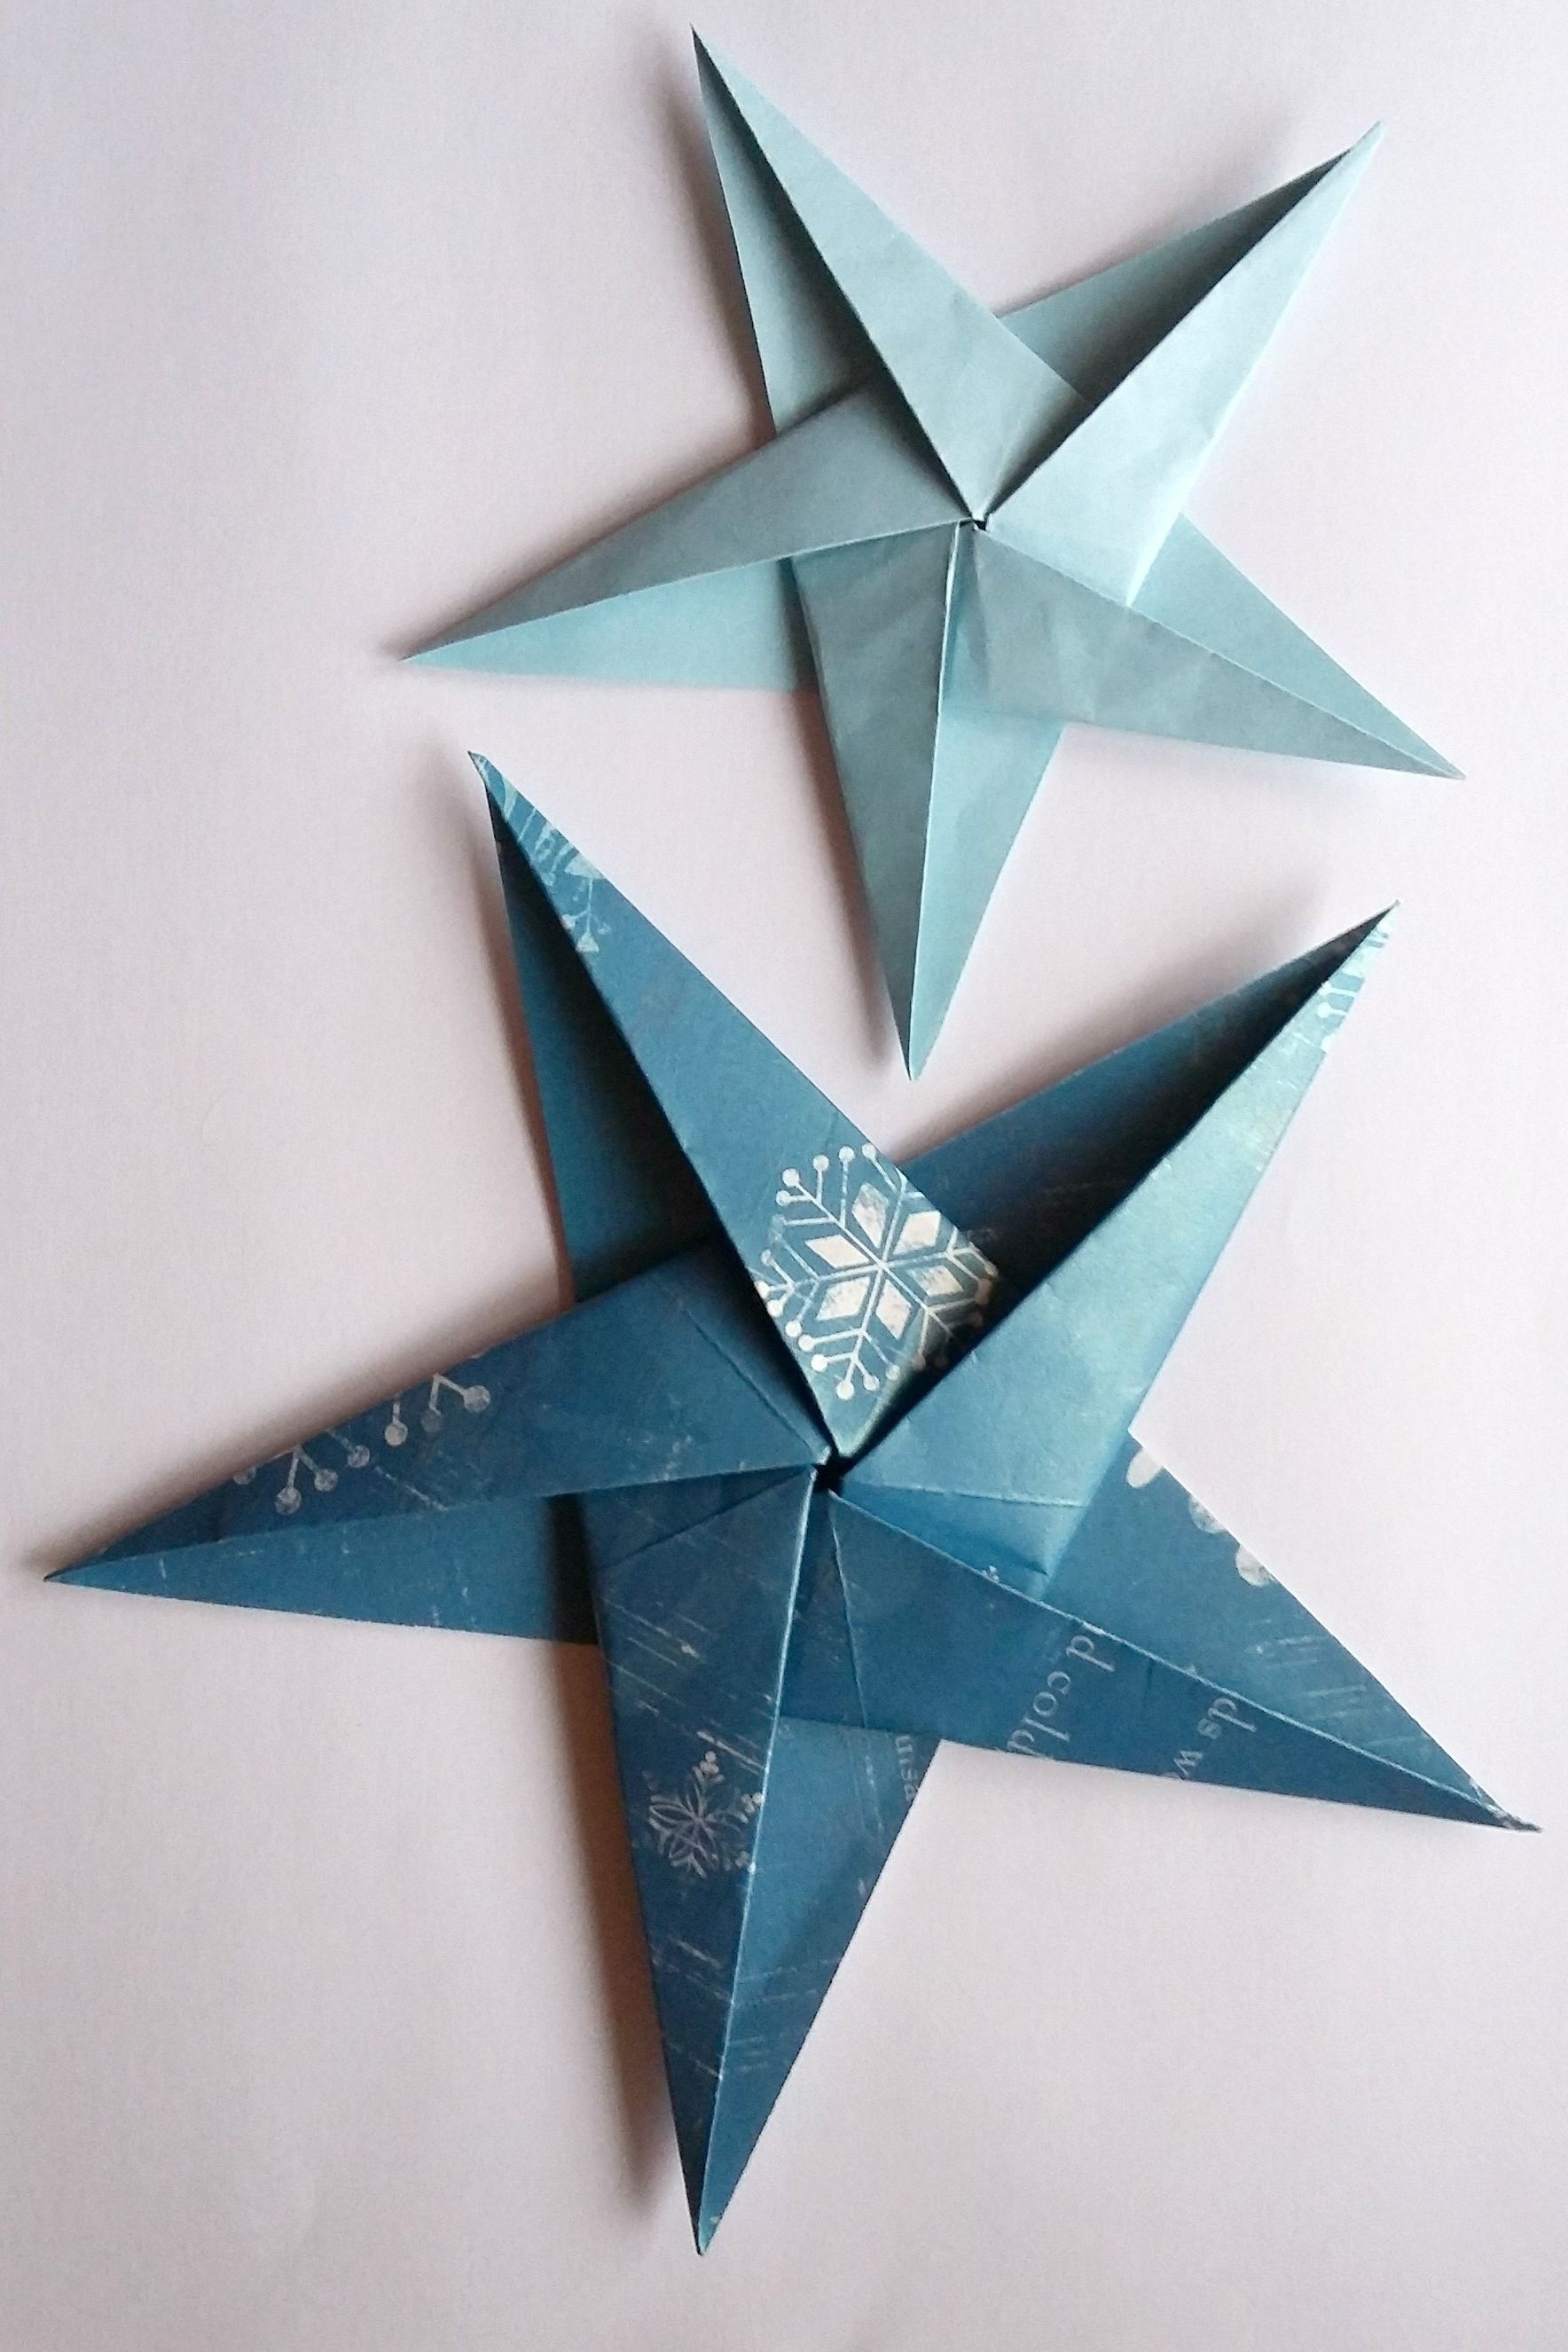 How To Make Folded Paper Christmas Decorations | night imagination ...